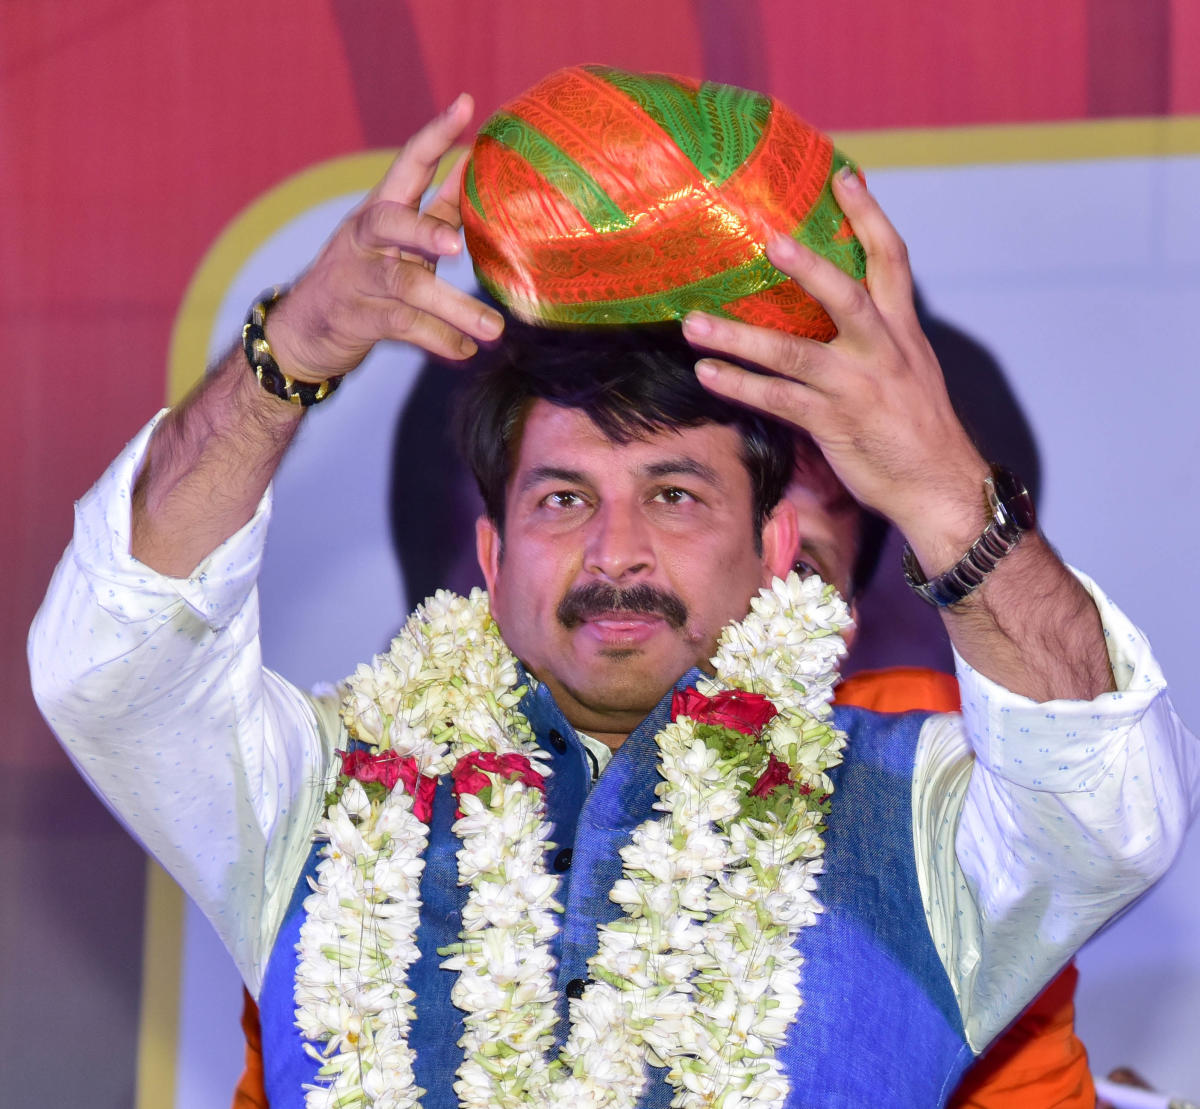 """BJP Delhi president Manoj Tiwari said, """"some people are deliberately trying to spread false news. 'Maryada Purushottam' Lord Ram is revered by all. There is no question of renaming Ramlila Maidan."""" (DH File Photo)"""